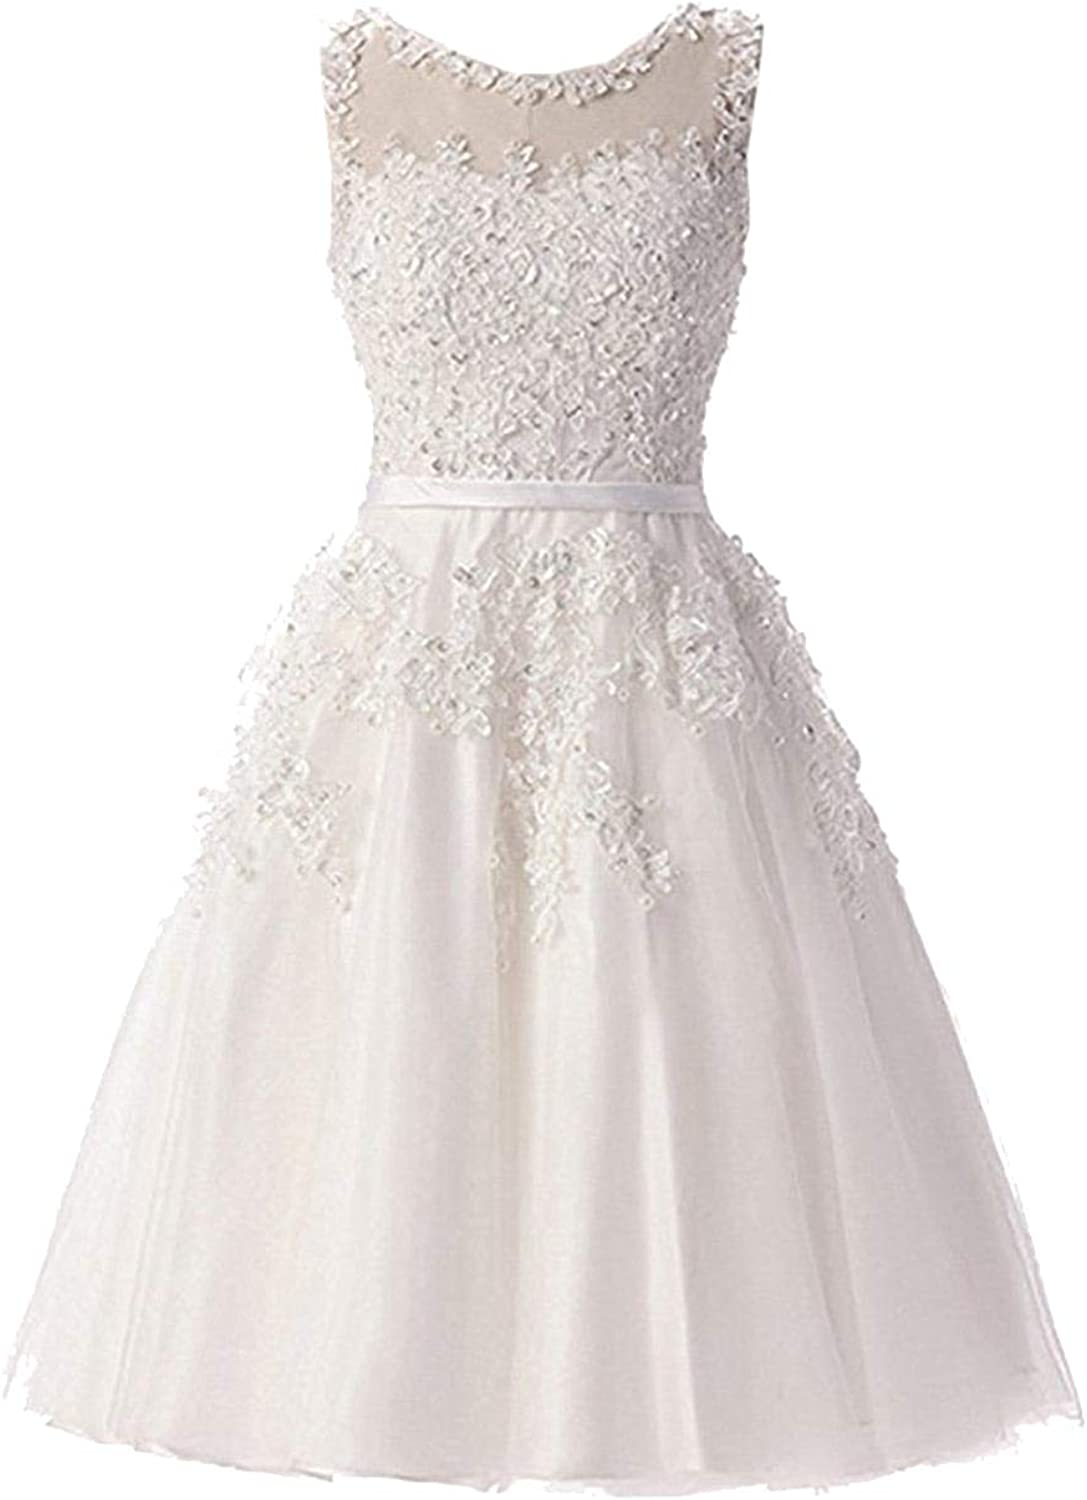 CAFSKYE Lace Illusion Flowers Beading ALine Knee Length Dinner Bridesmaids Dresses Party Short Formal Dress,Ivory,12